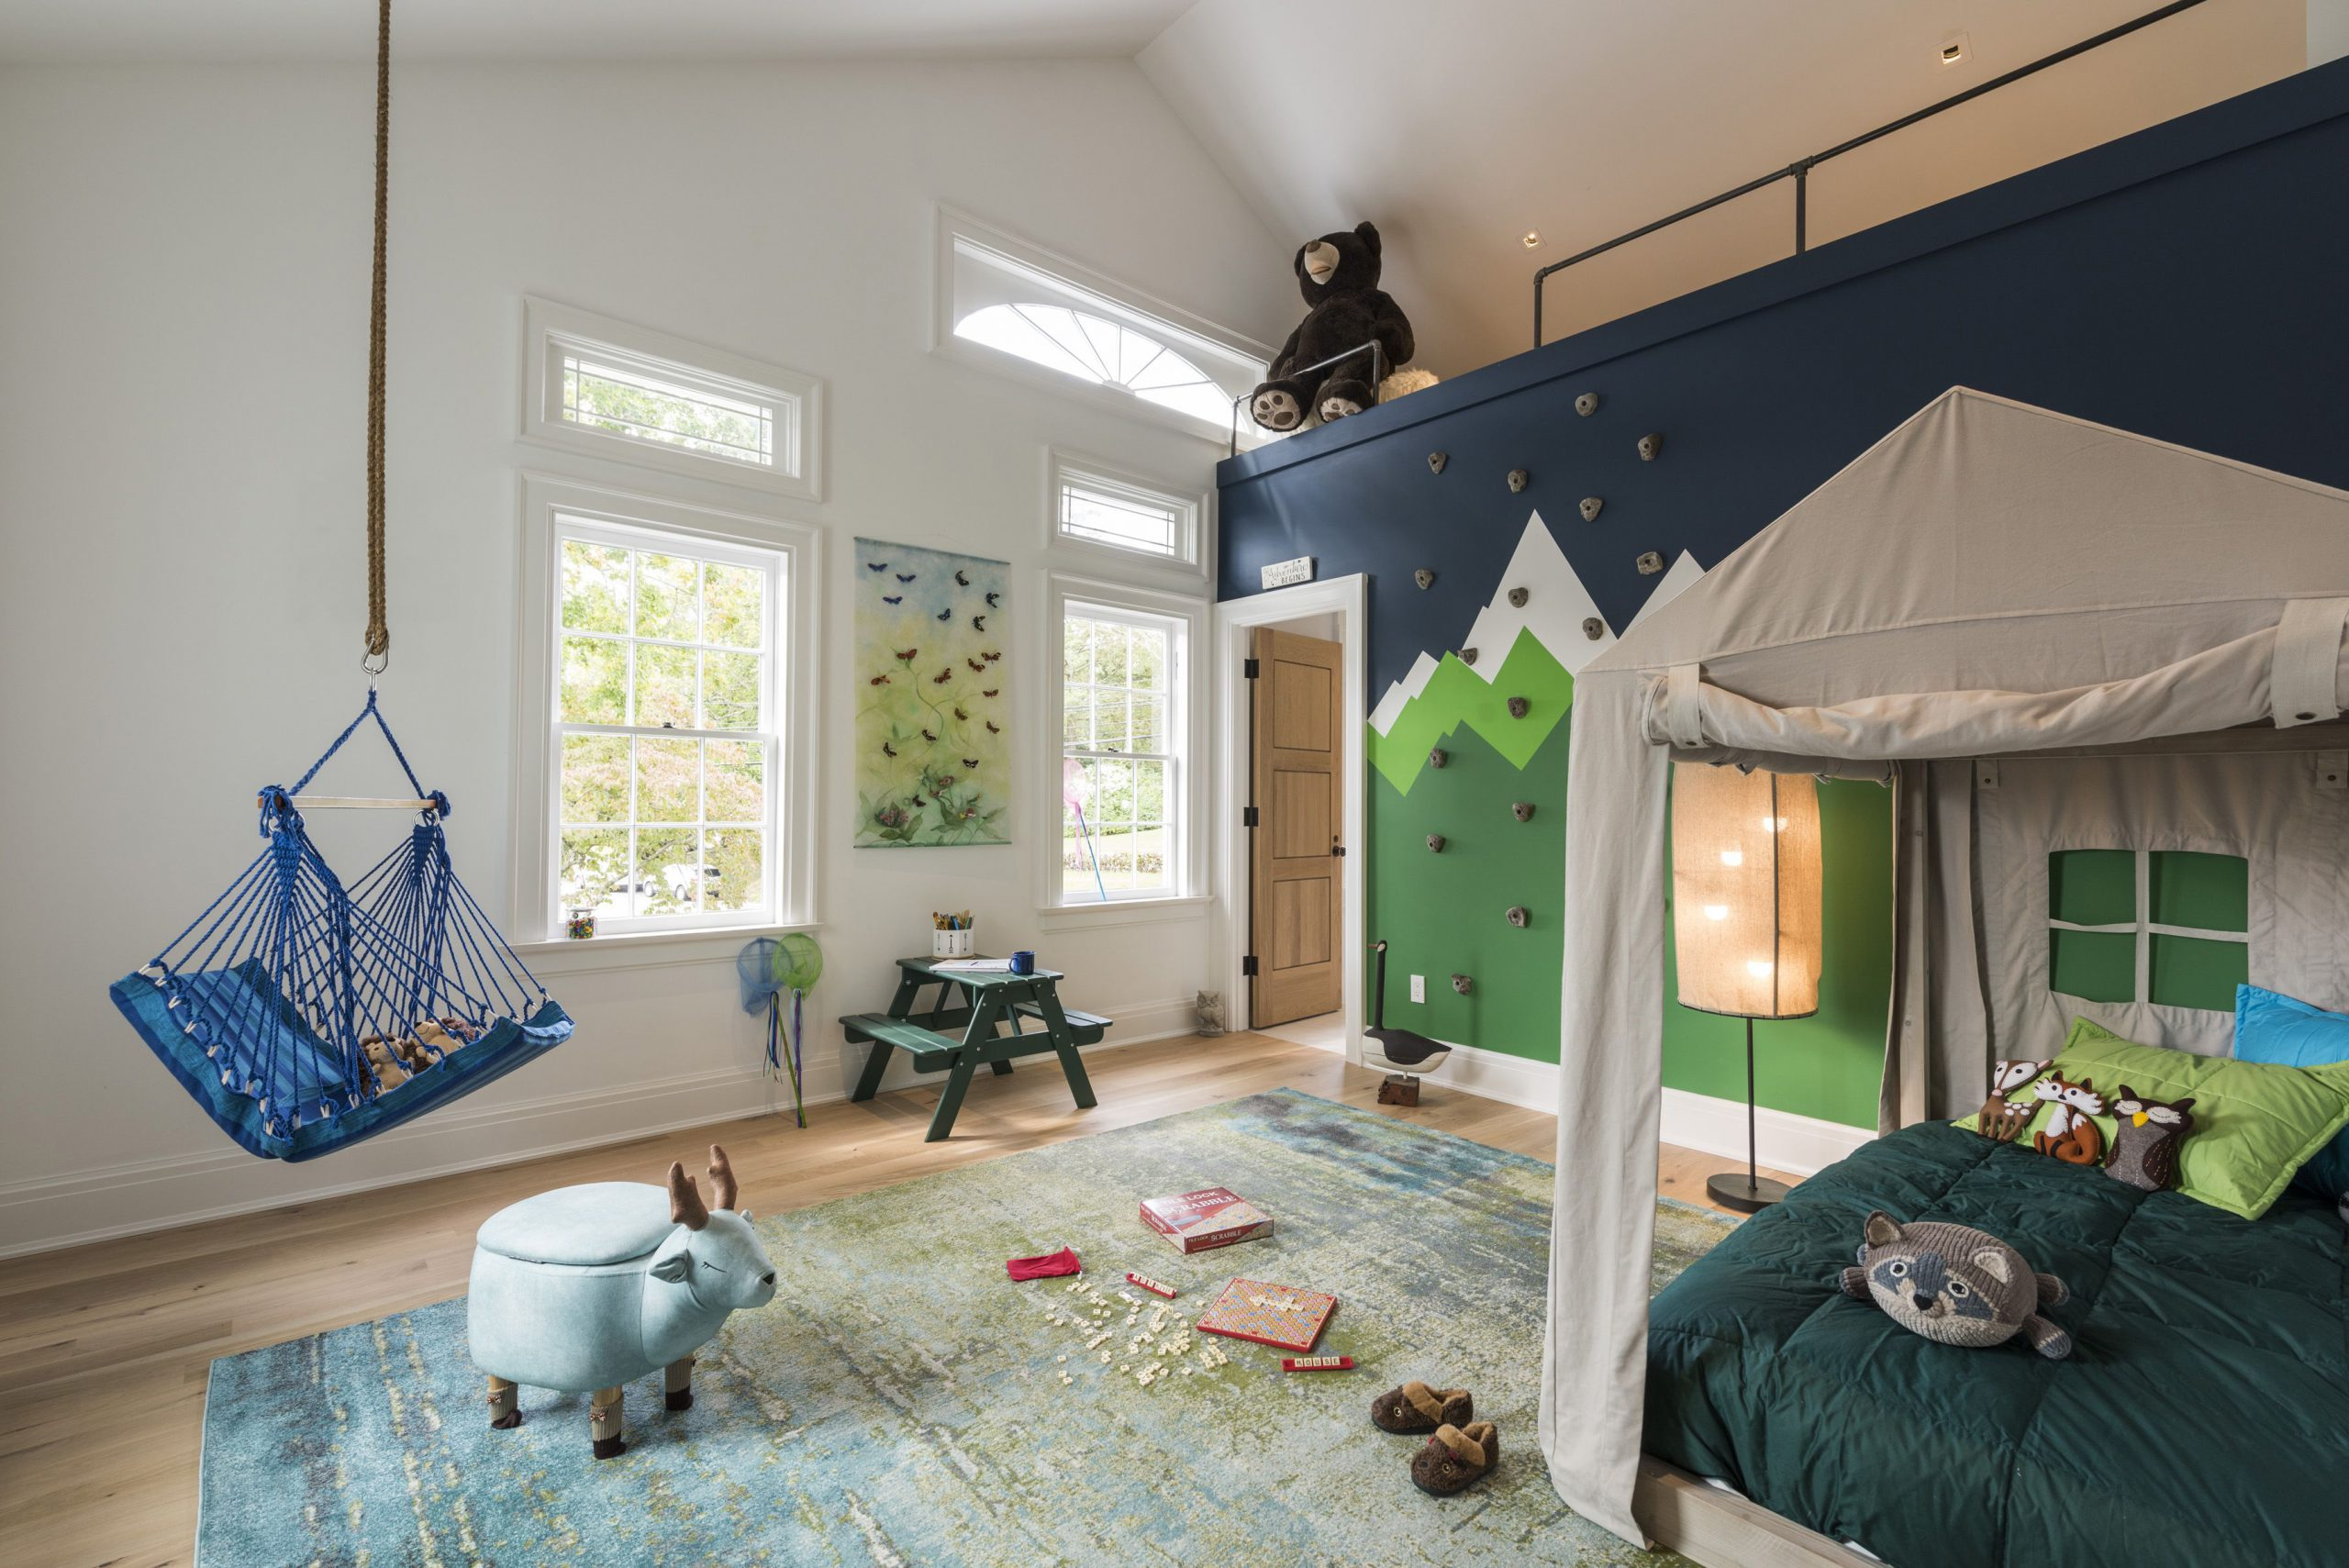 Bedroom with Play Area